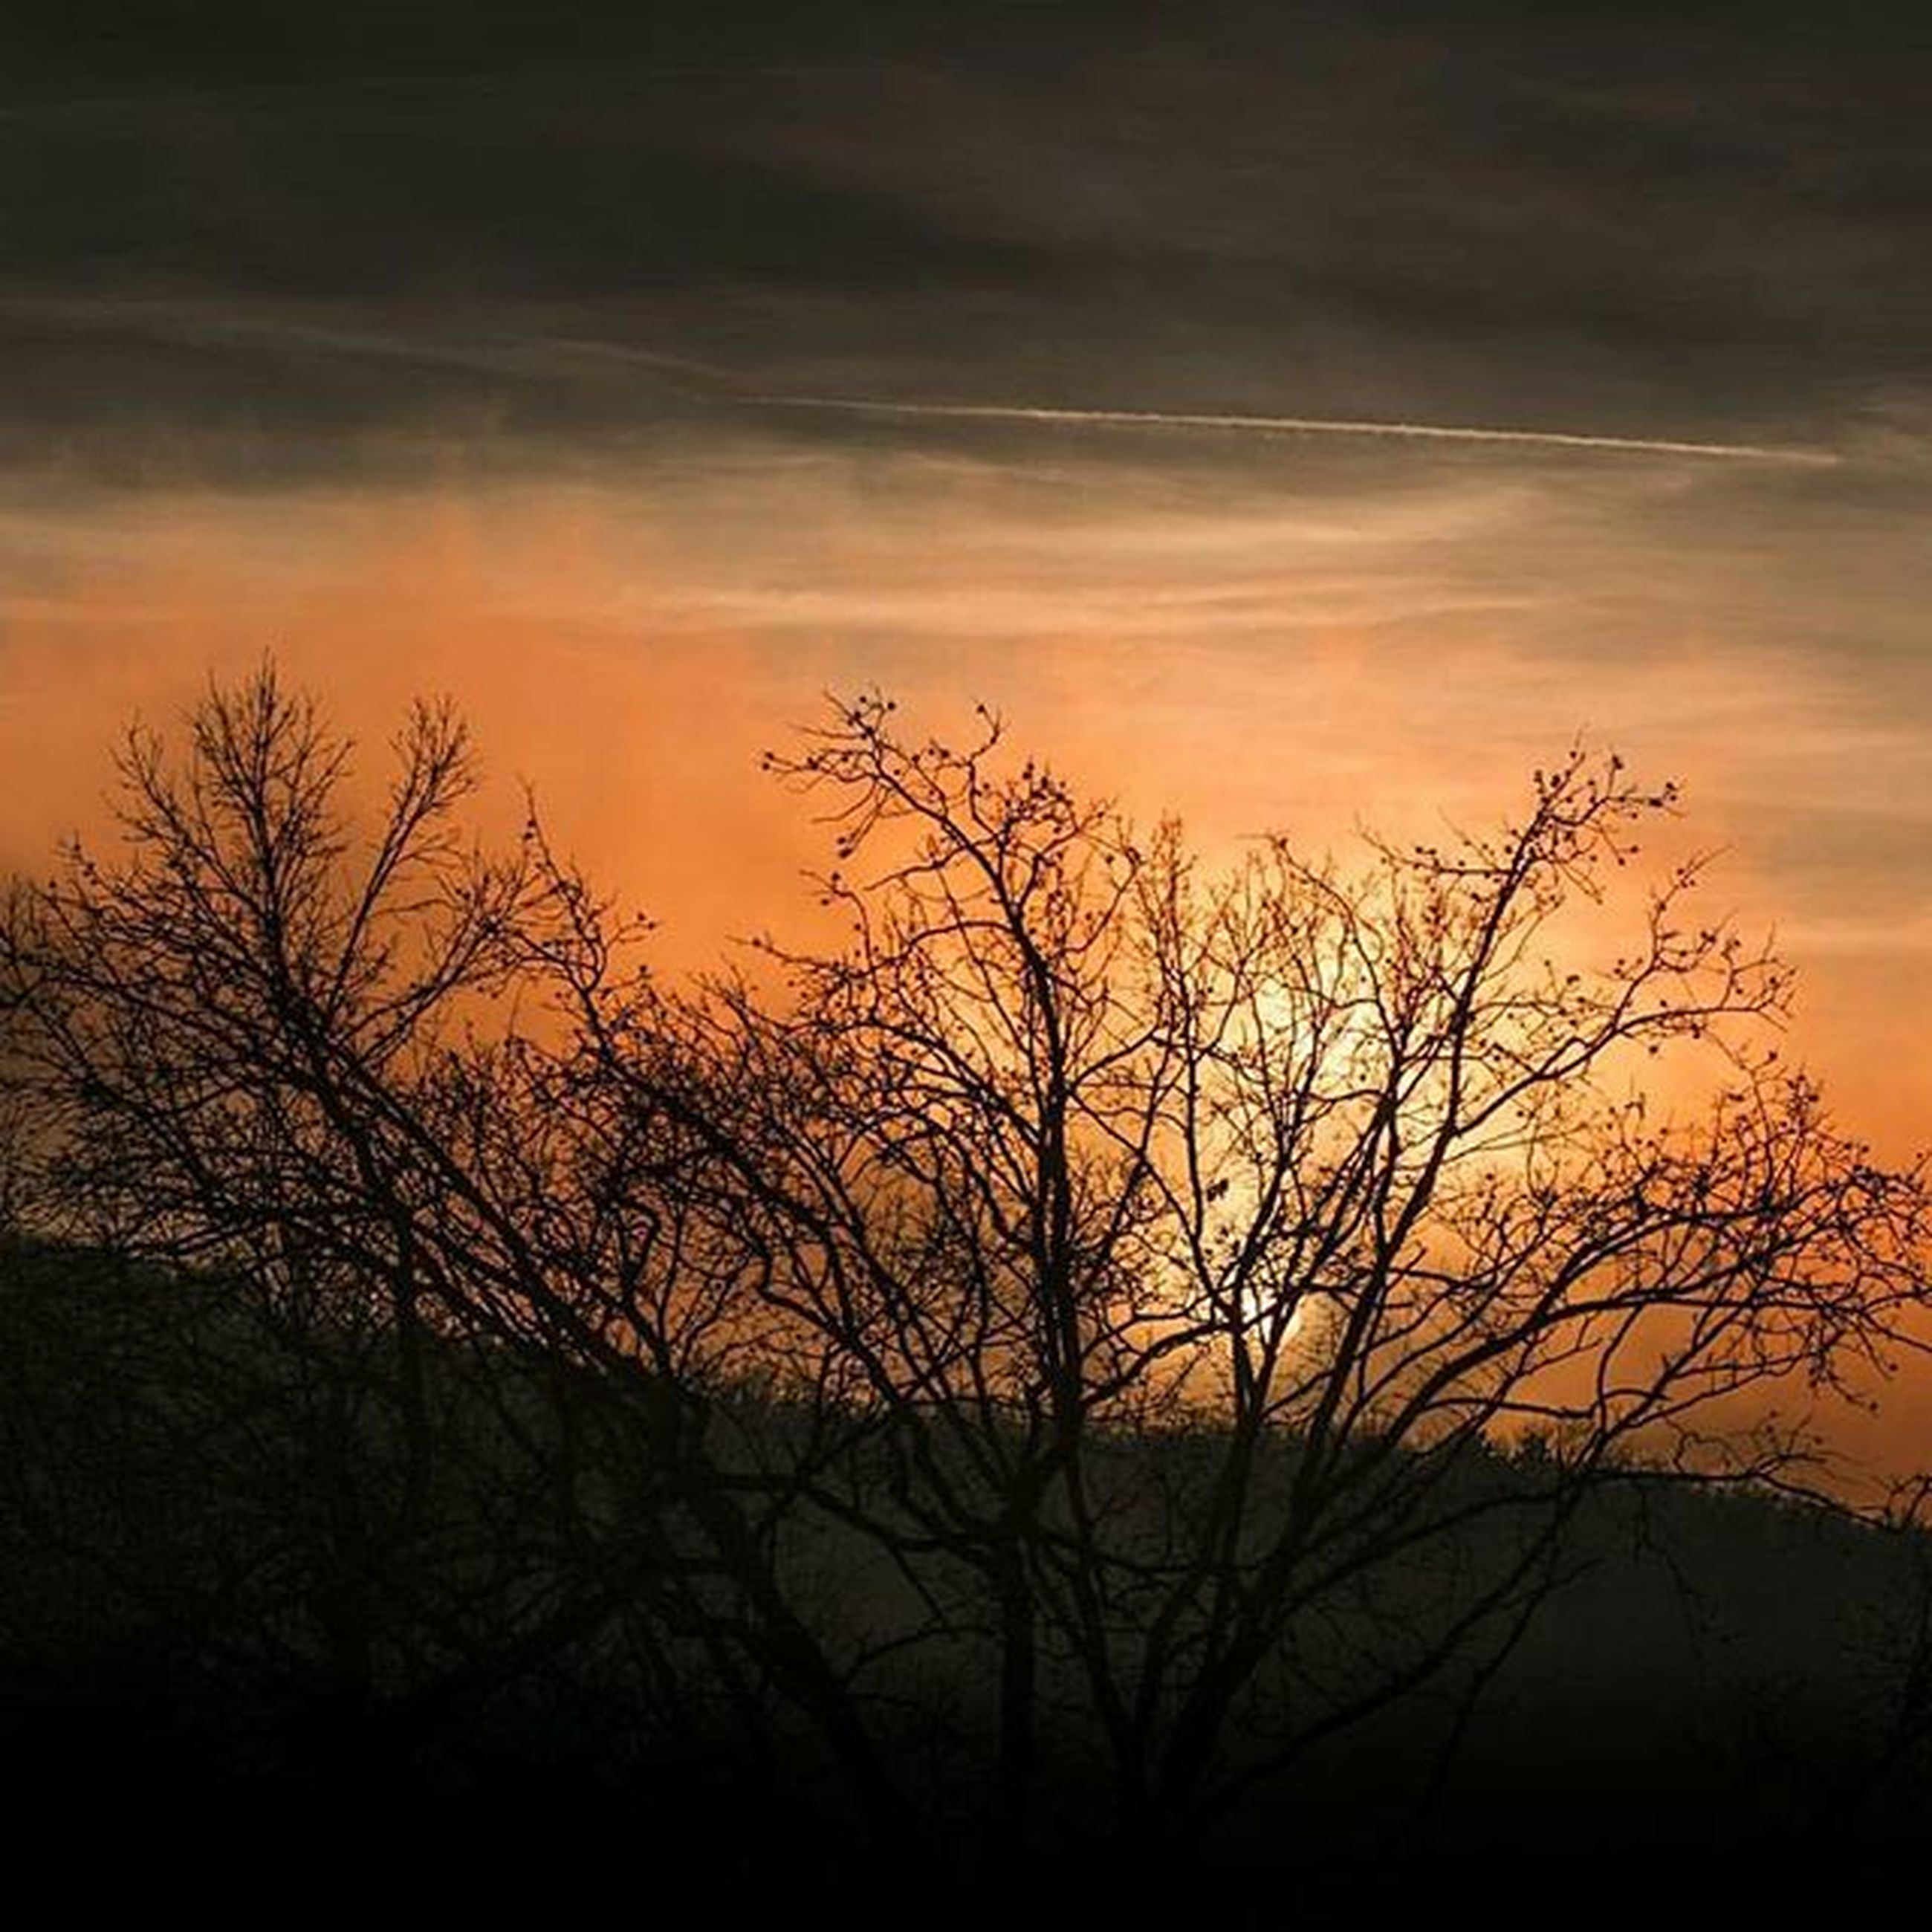 sunset, silhouette, bare tree, sky, tranquility, orange color, scenics, tranquil scene, beauty in nature, branch, tree, cloud - sky, nature, idyllic, dramatic sky, cloud, landscape, outdoors, majestic, cloudy